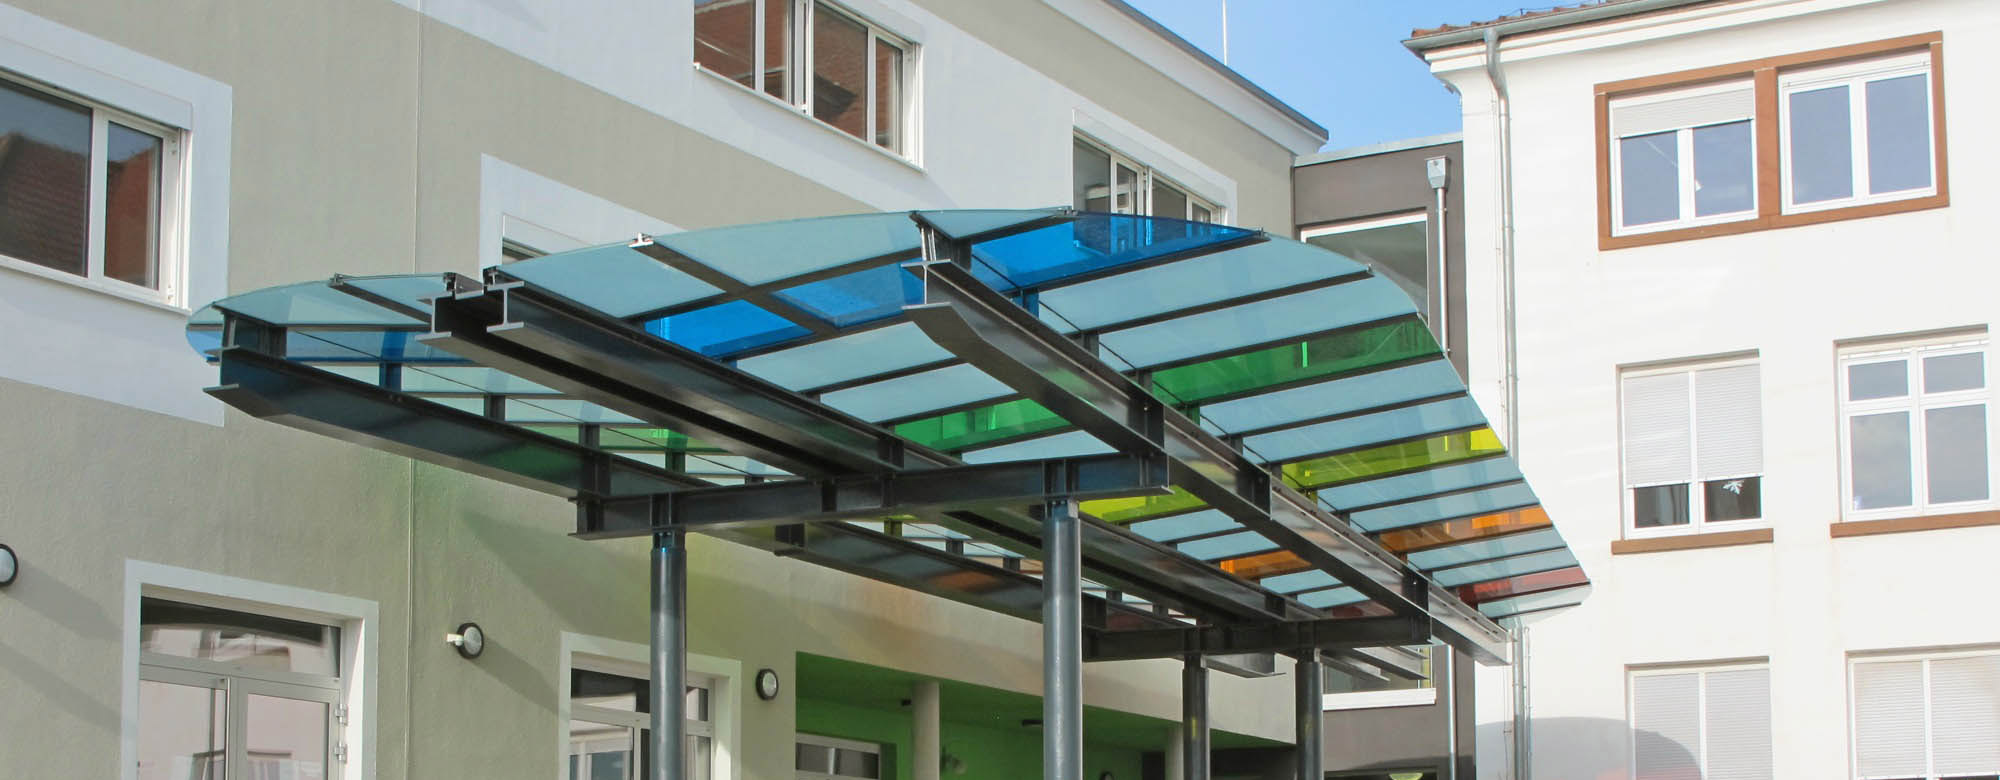 Forzon - Glass canopy 02